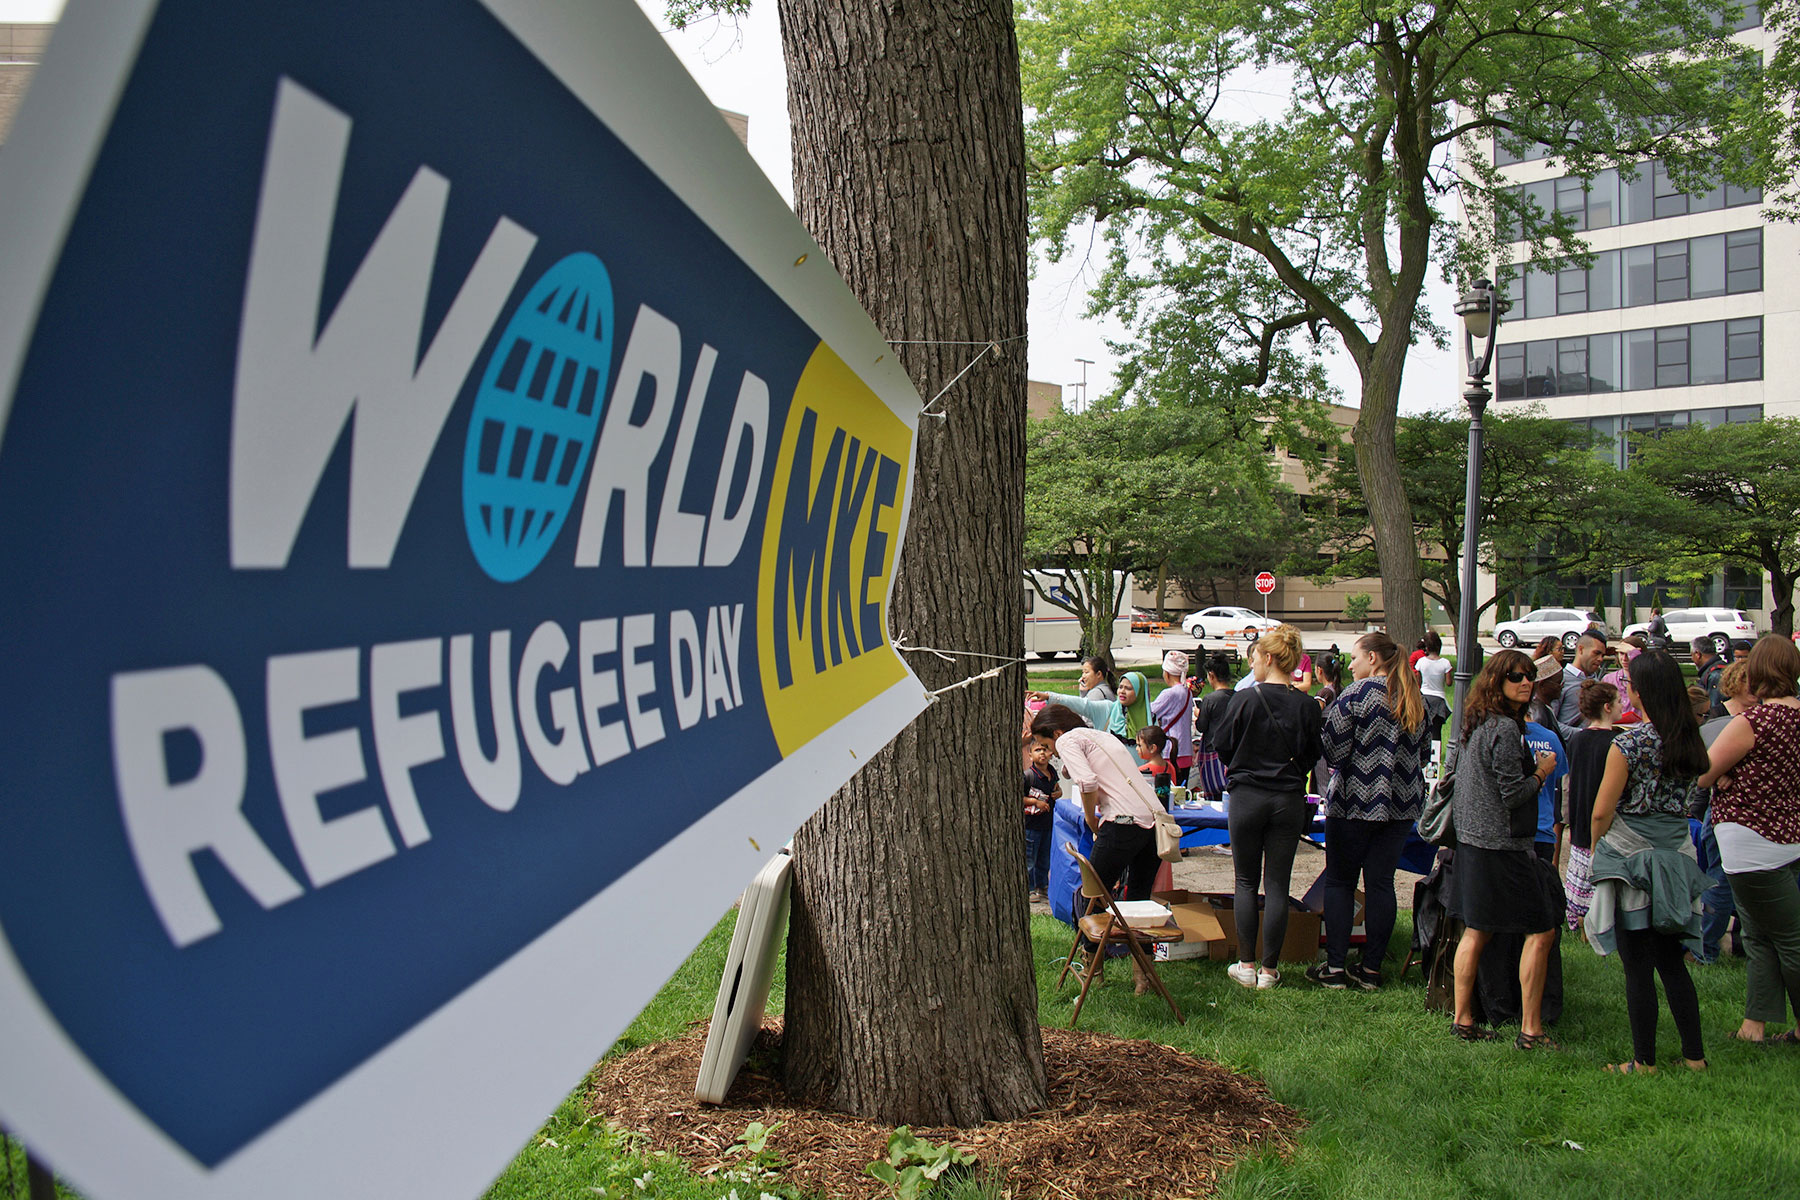 02_062018_worldrefugeeday_0420